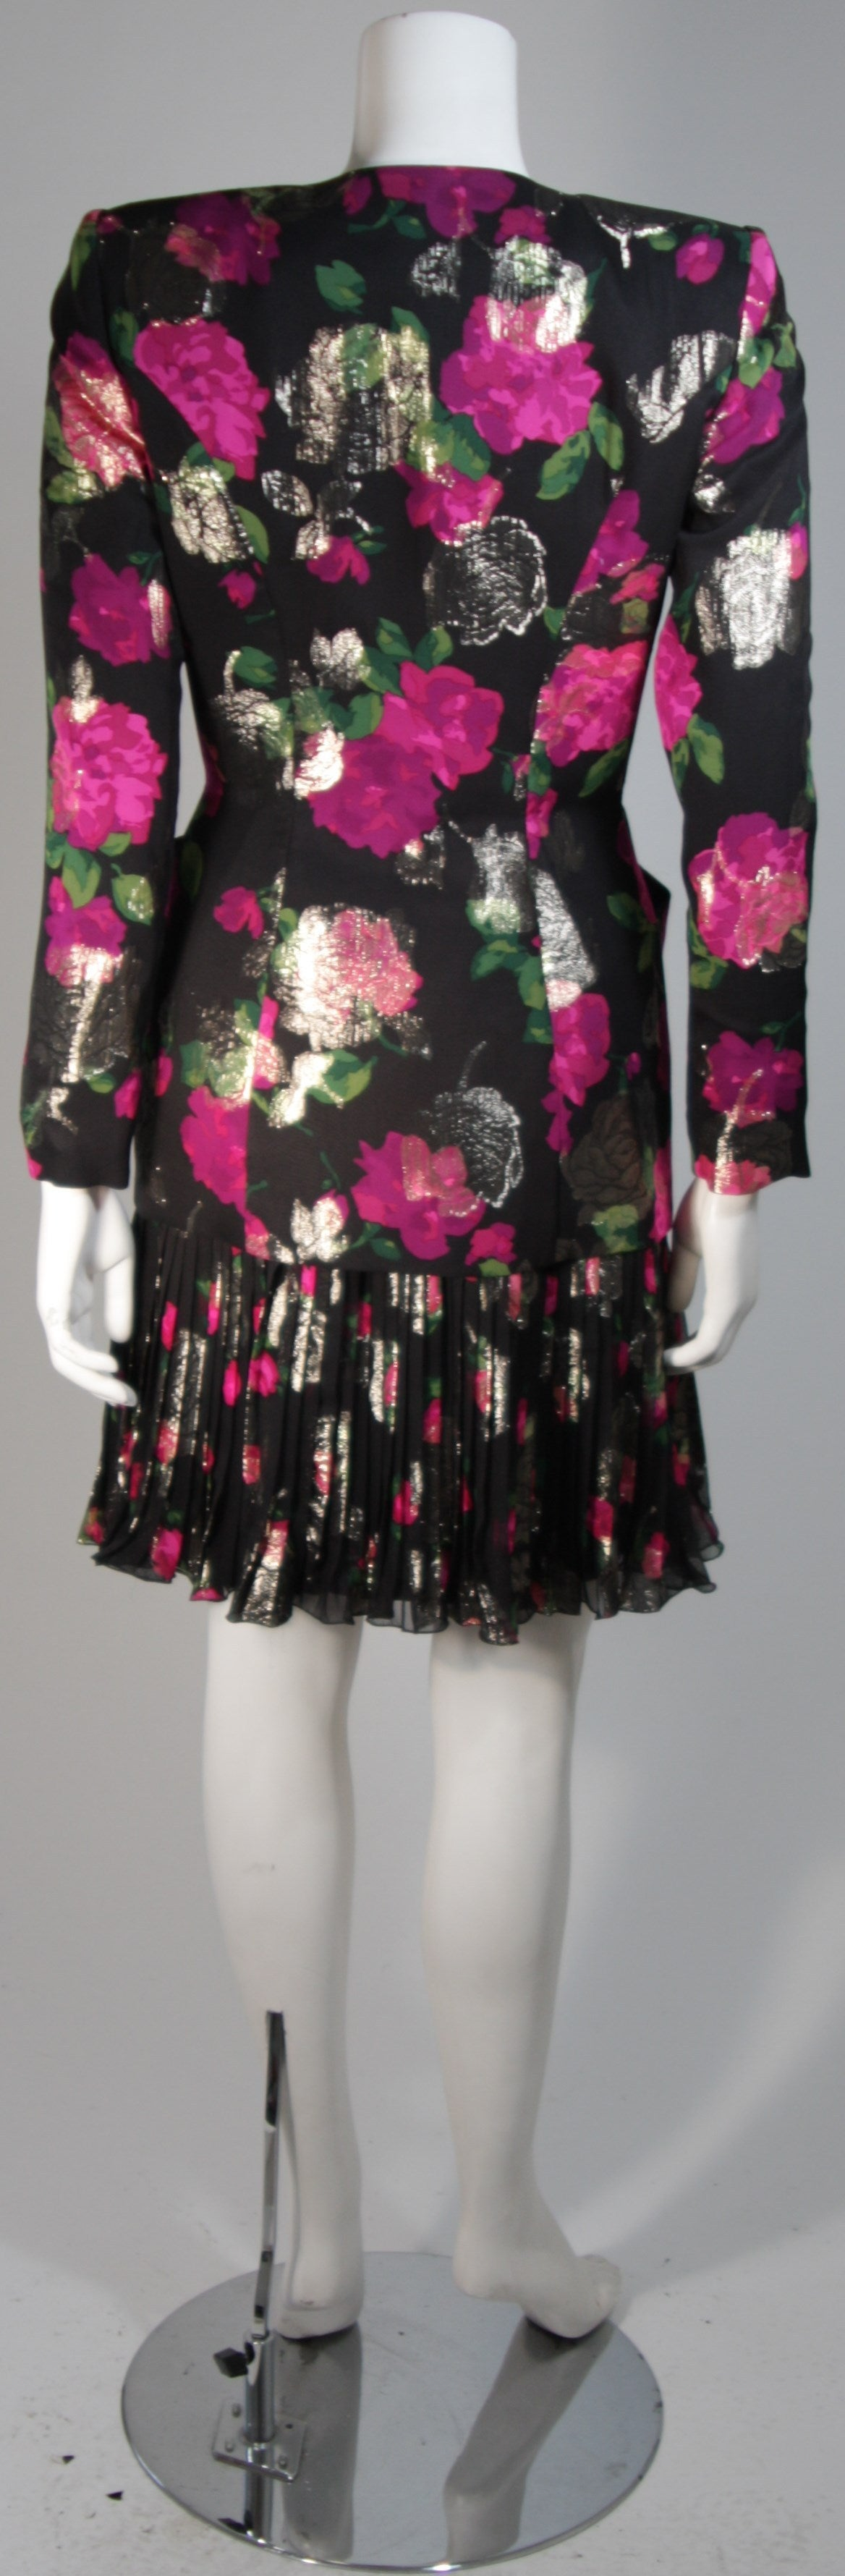 Vicky Tiel Black SilkSuit with Floral Motif and Pleated Chiffon Skirt Size Small For Sale 3